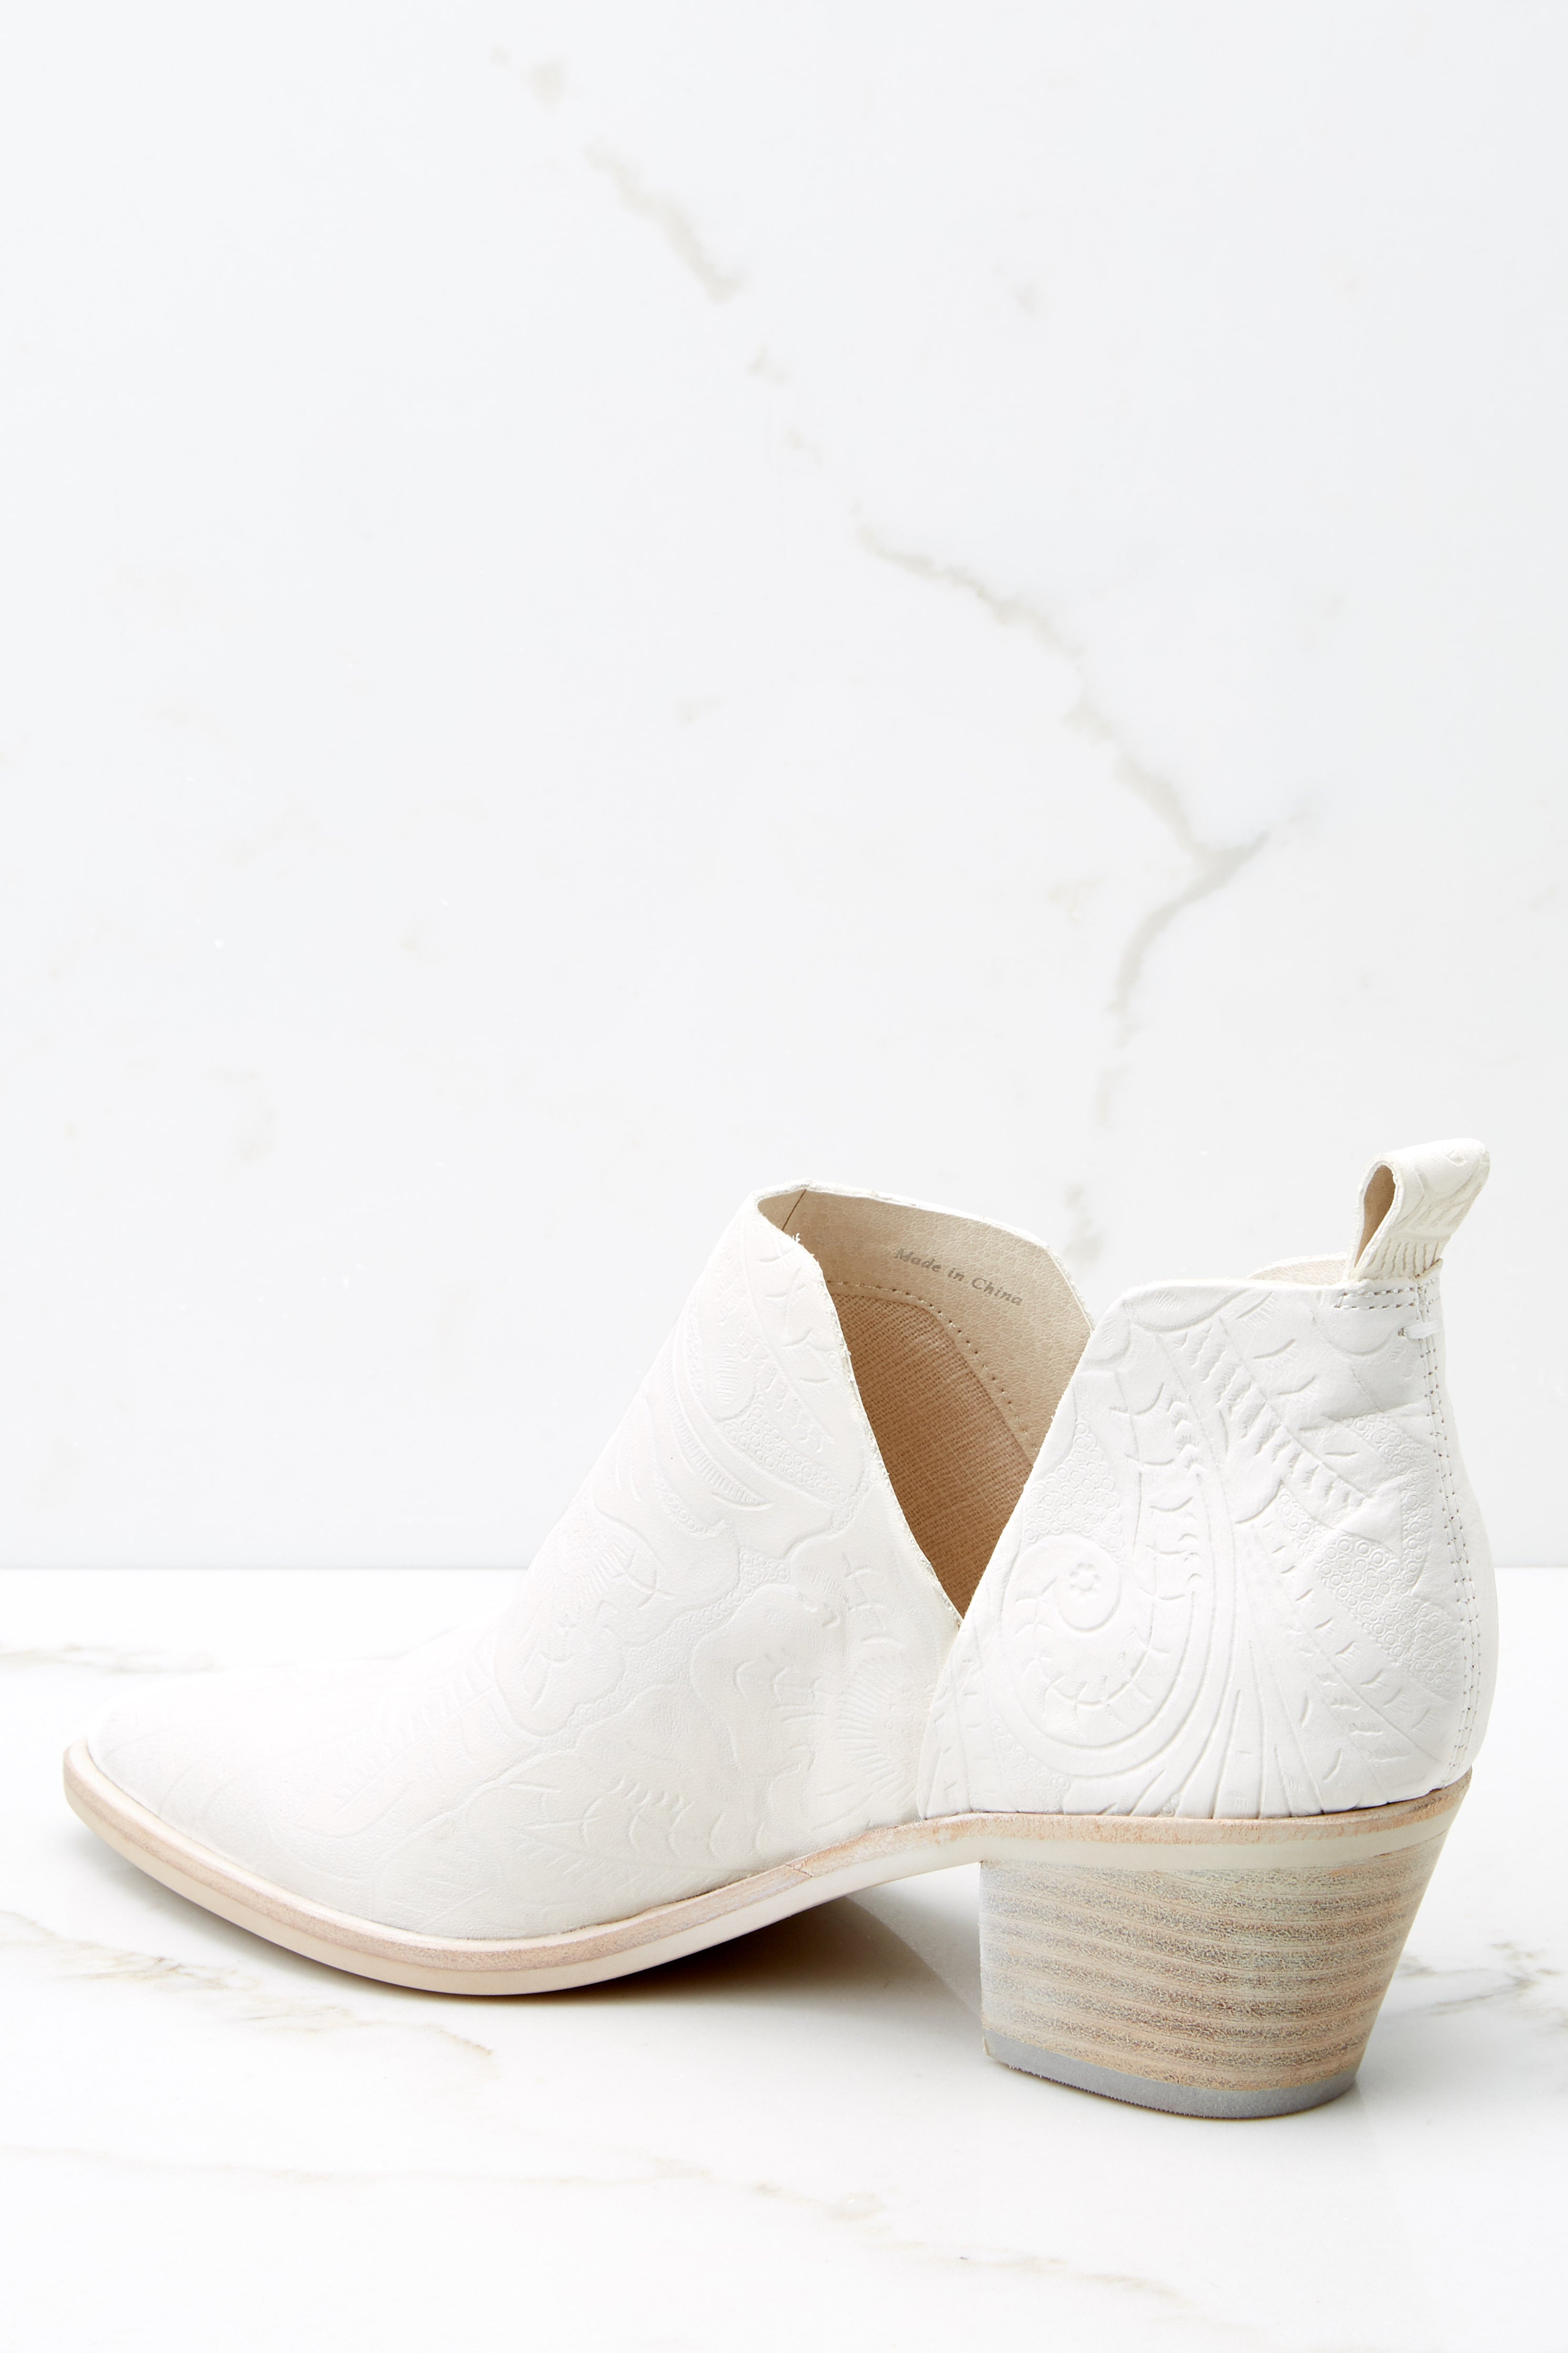 6 Sonni White Embossed Booties at reddress.com